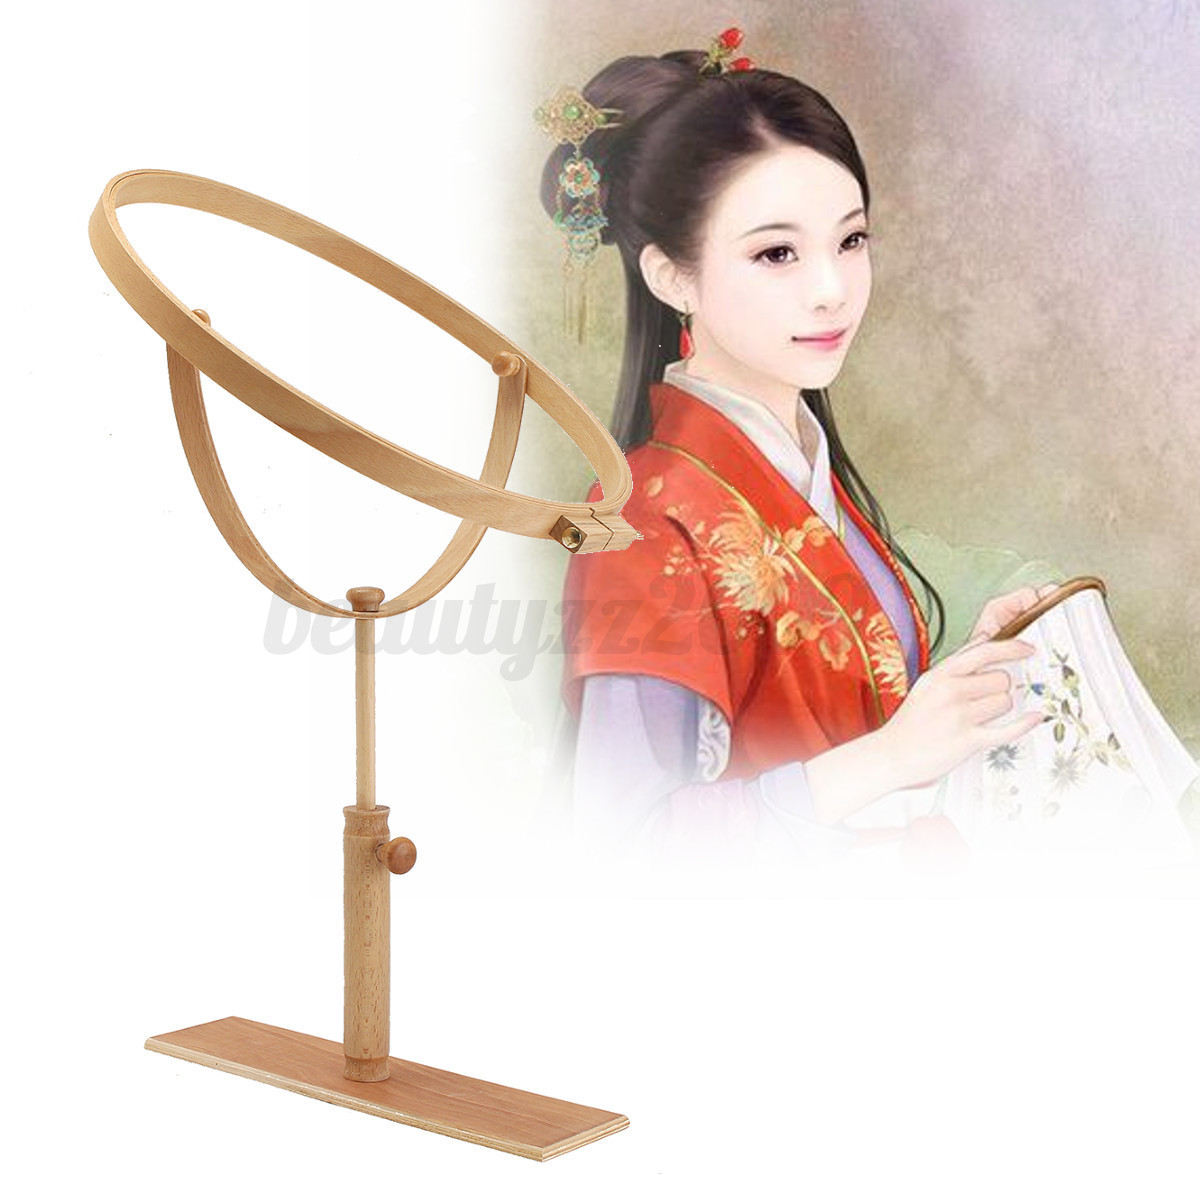 Adjustable embroidery hoop lap frame stand wooden rings